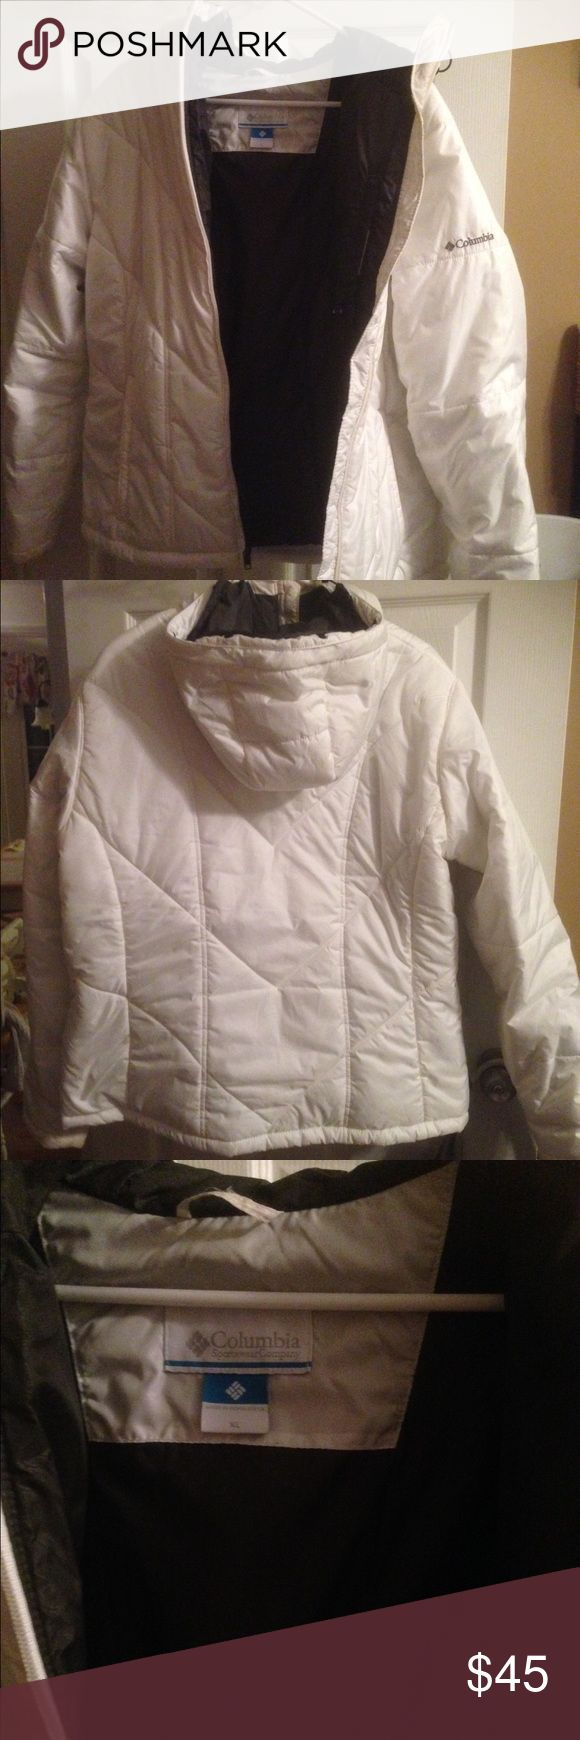 Columbia Coat White XL Columbia coat. Puffer coat but very lightweight. No tears. Small discoloration from makeup at top of zipper. Very comfortable coat!! Columbia Jackets & Coats Puffers